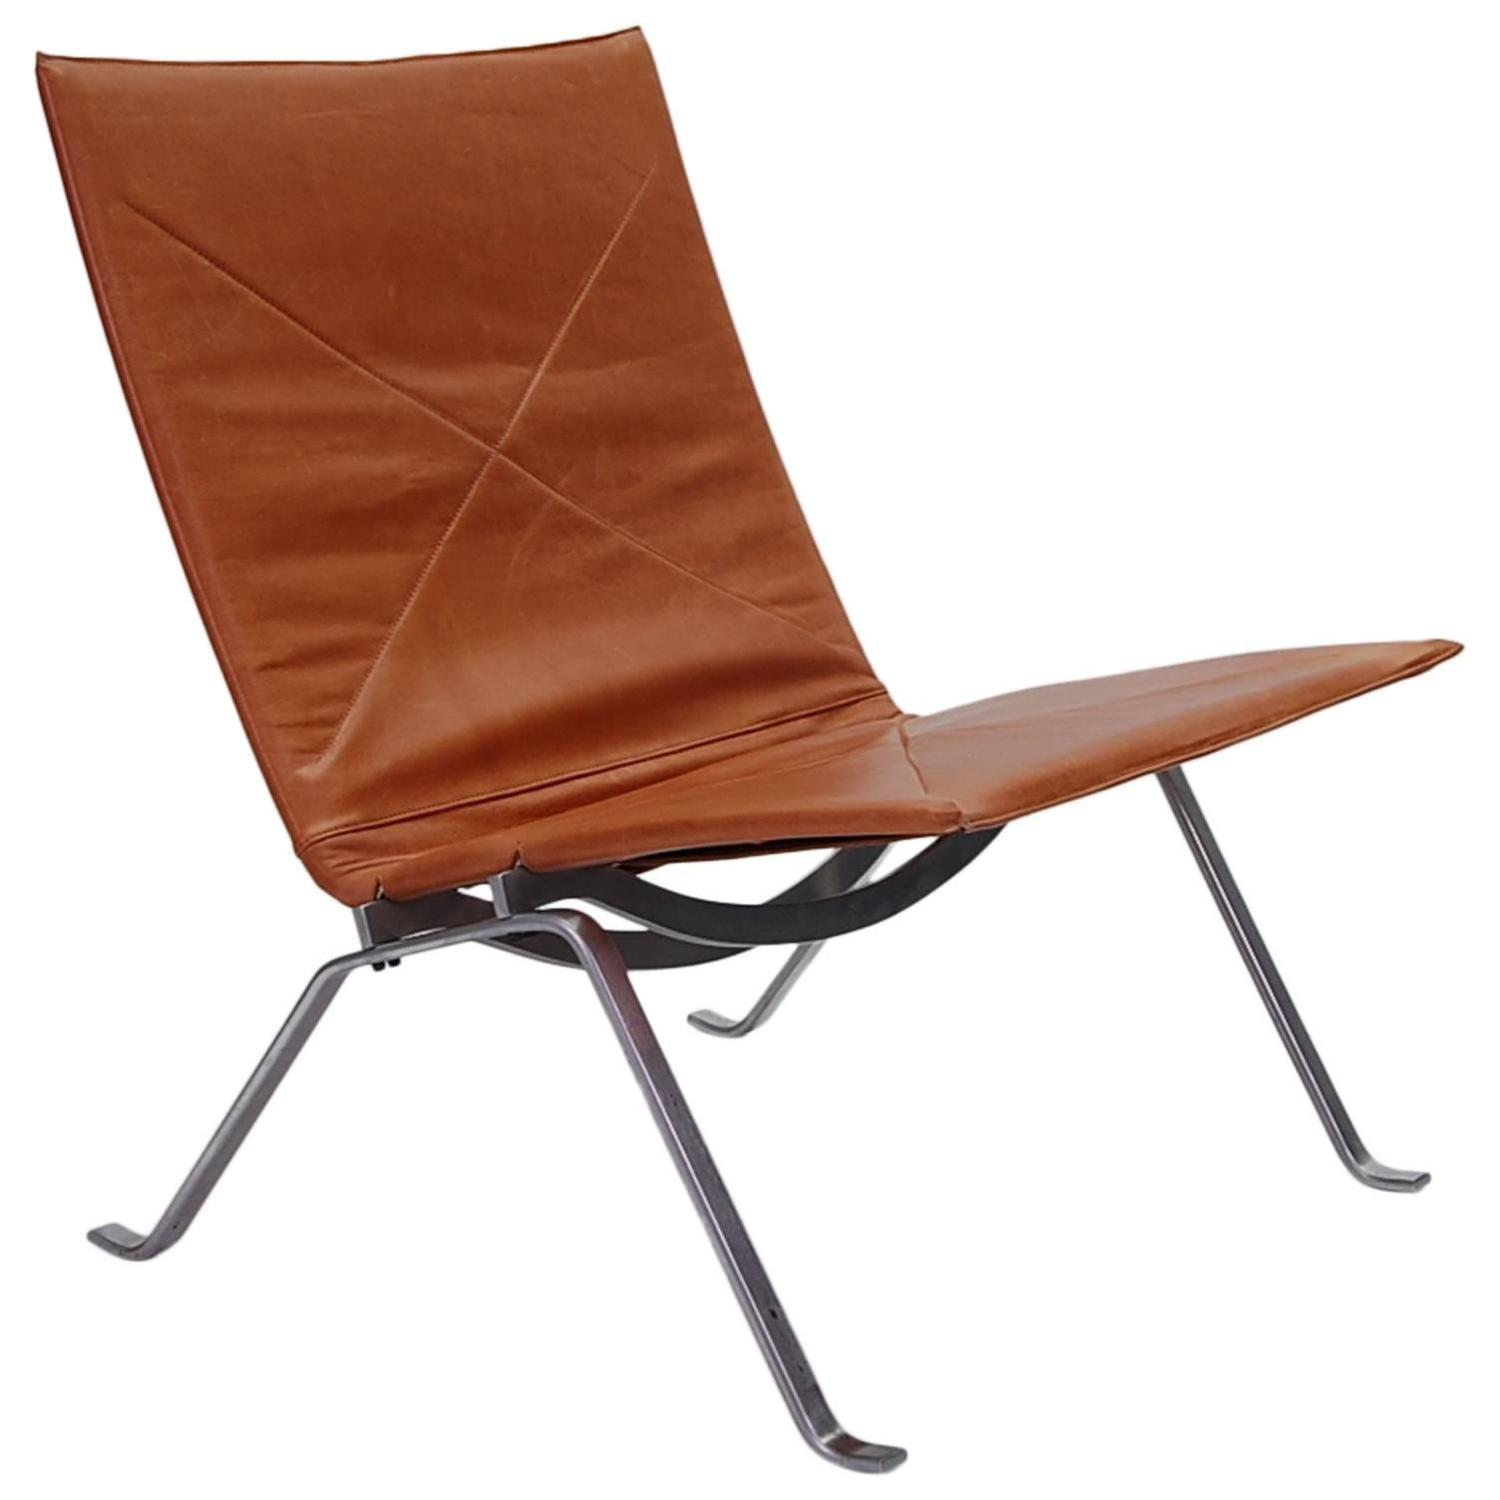 Pk22 Chair Early Poul Kjaerholm Pk22 Lounge Chair For Sale At 1stdibs